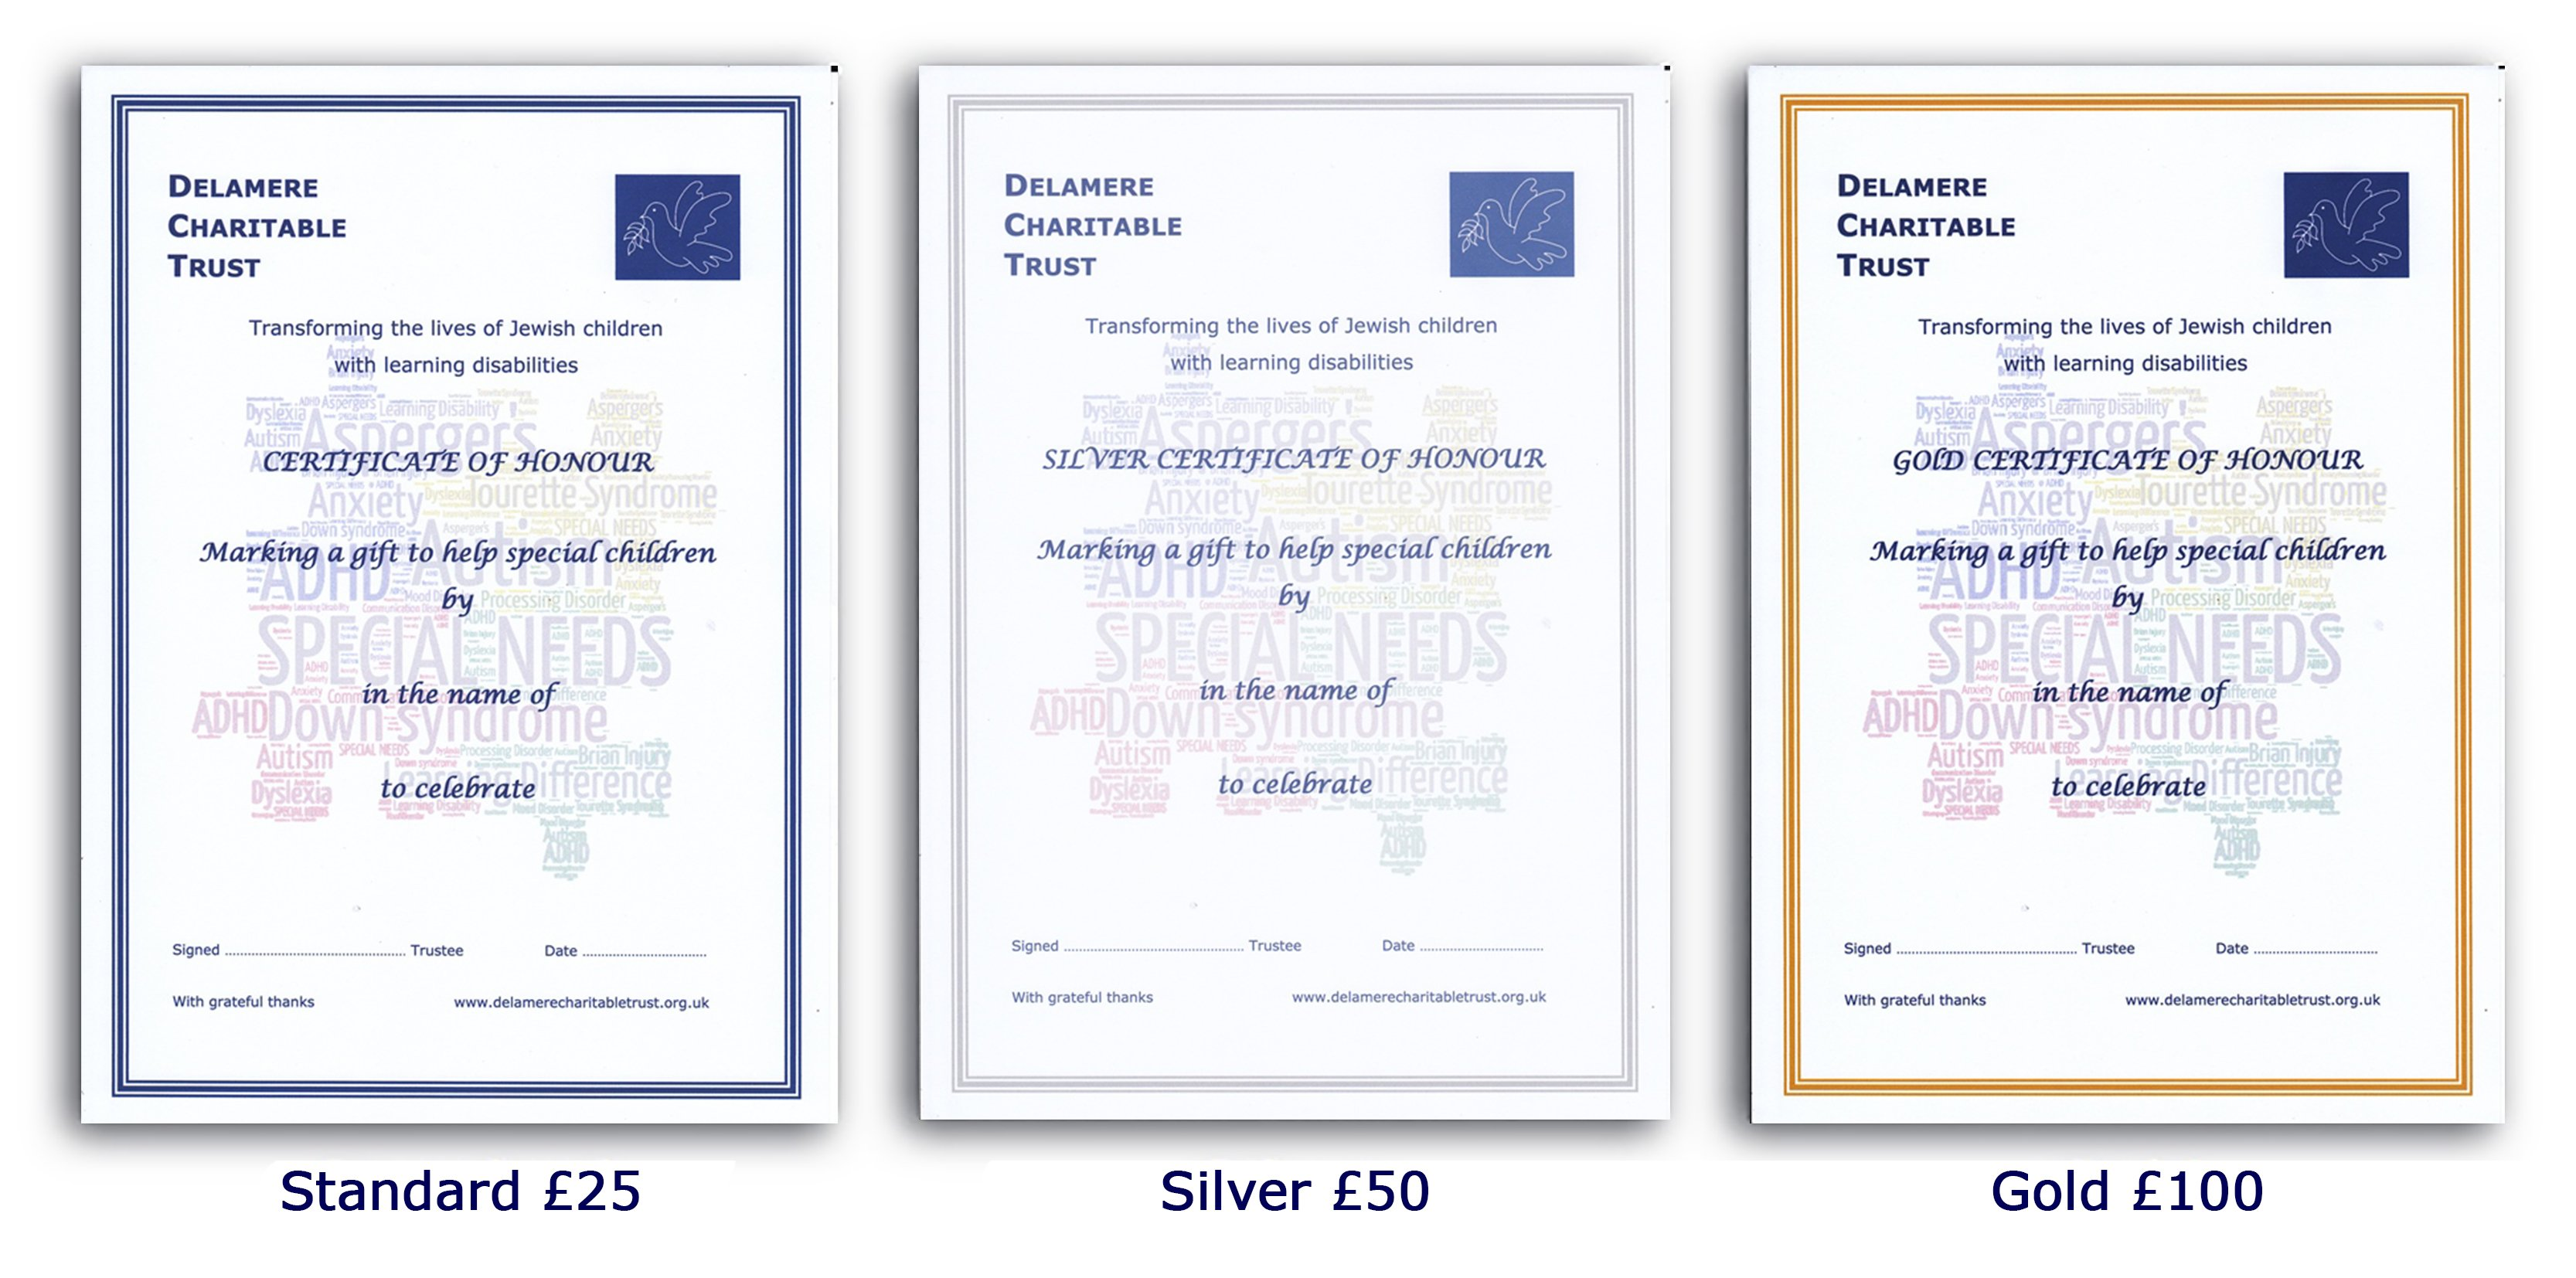 Image of the different certificates